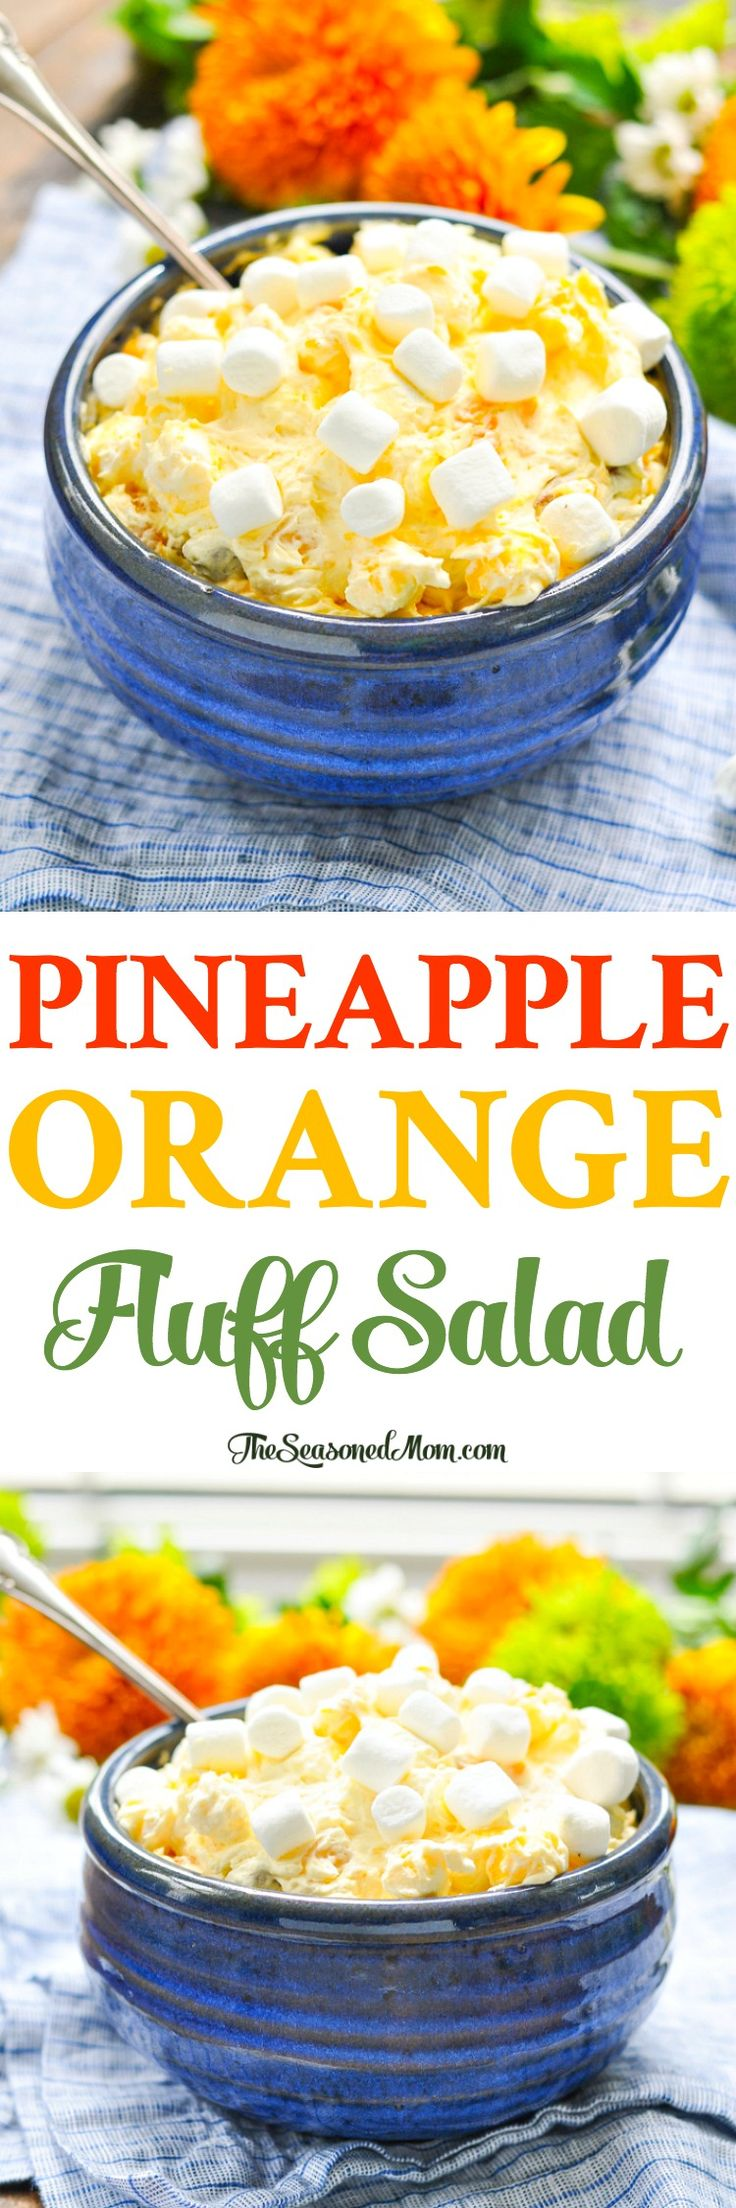 This recipe for Orange Pineapple Fluff Salad was originally posted in June, 2013. The photos were updated in September, 2017. I'm always looking for new ideas for quick and easy side dishes, and this one is delicious! The Orange Pineapple Fluff Salad pairs perfectly with ham or other meat on a dinner table, holiday brunch...Read More »